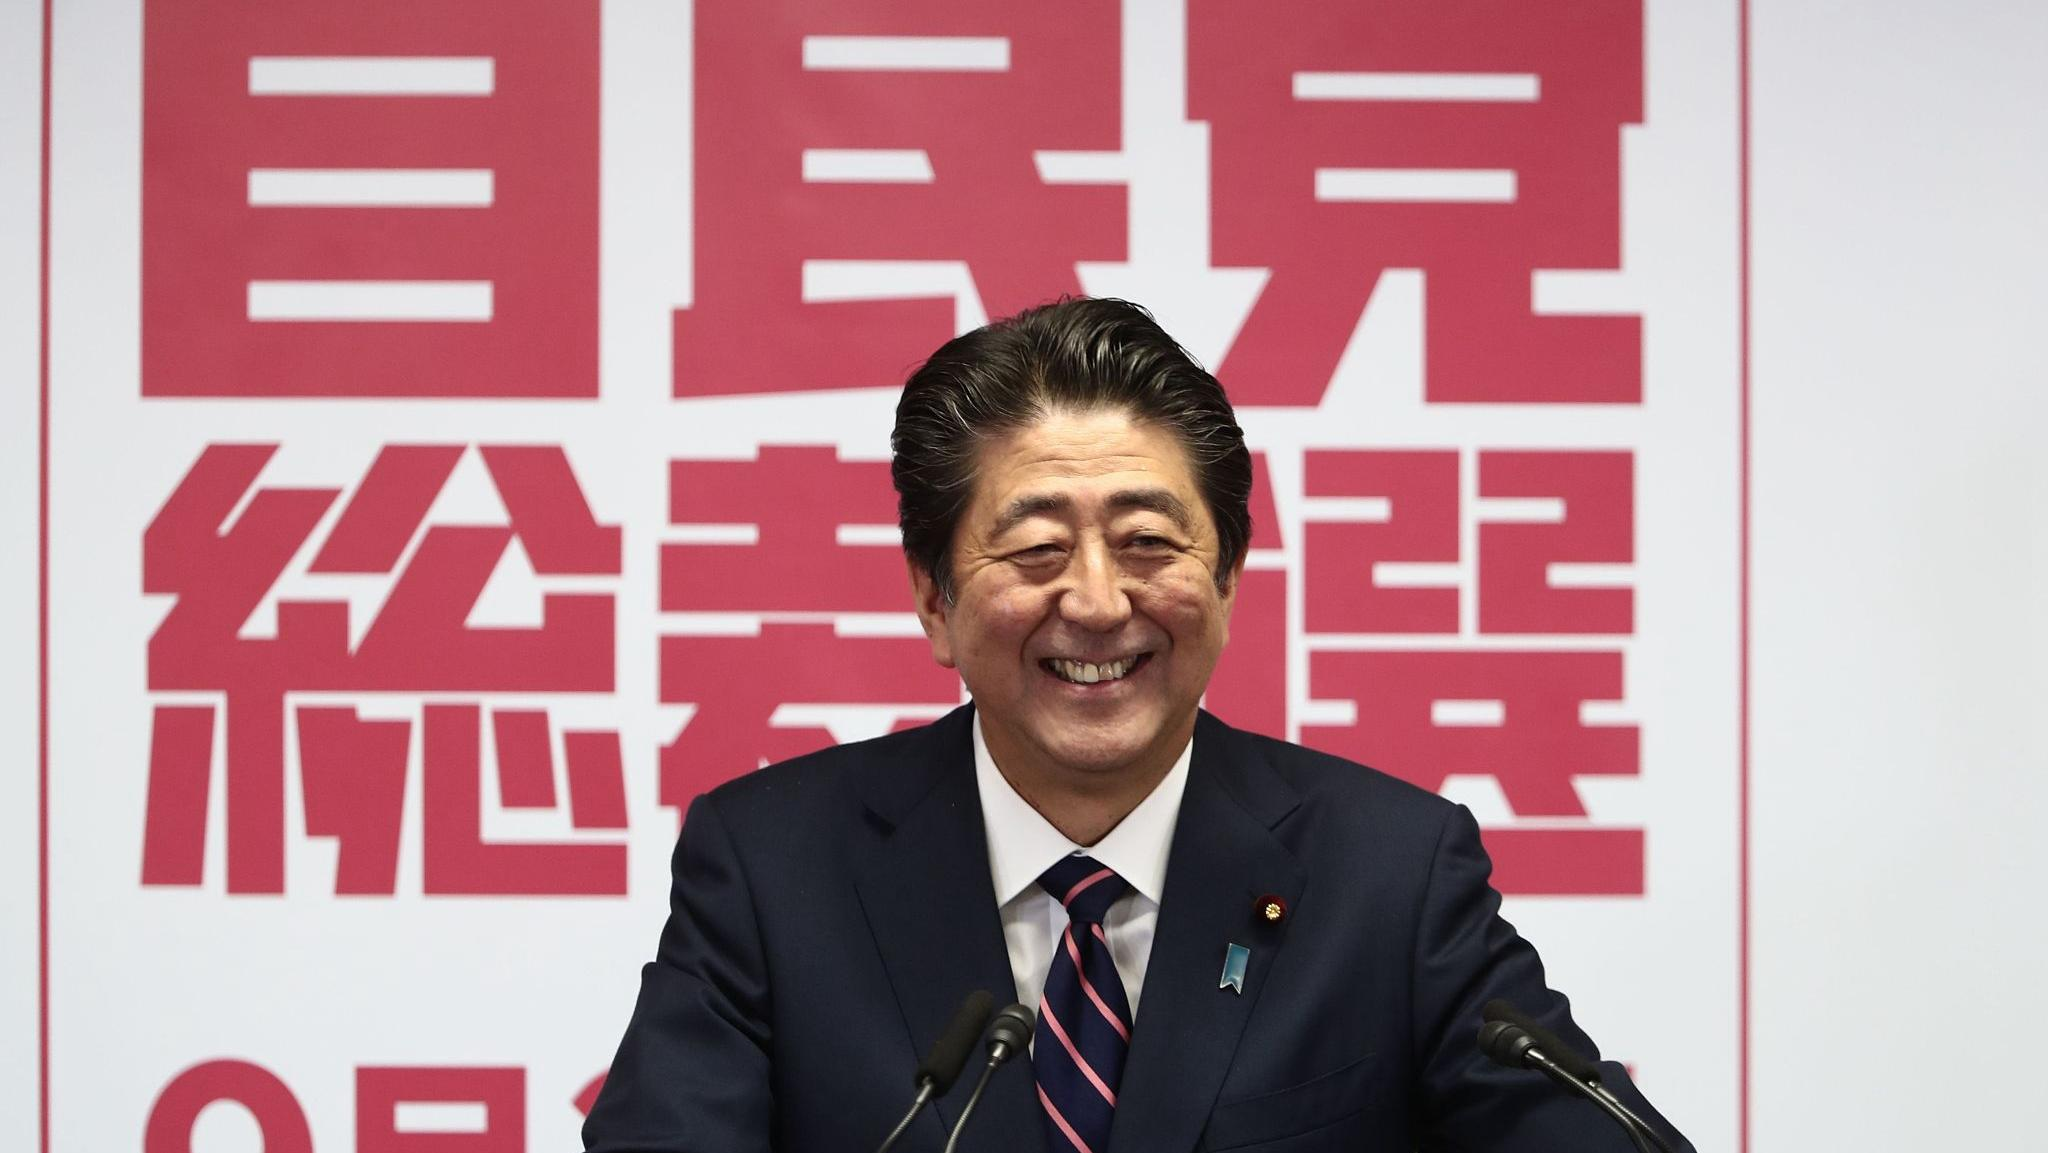 For Abe, water can carry a boat but also sink it